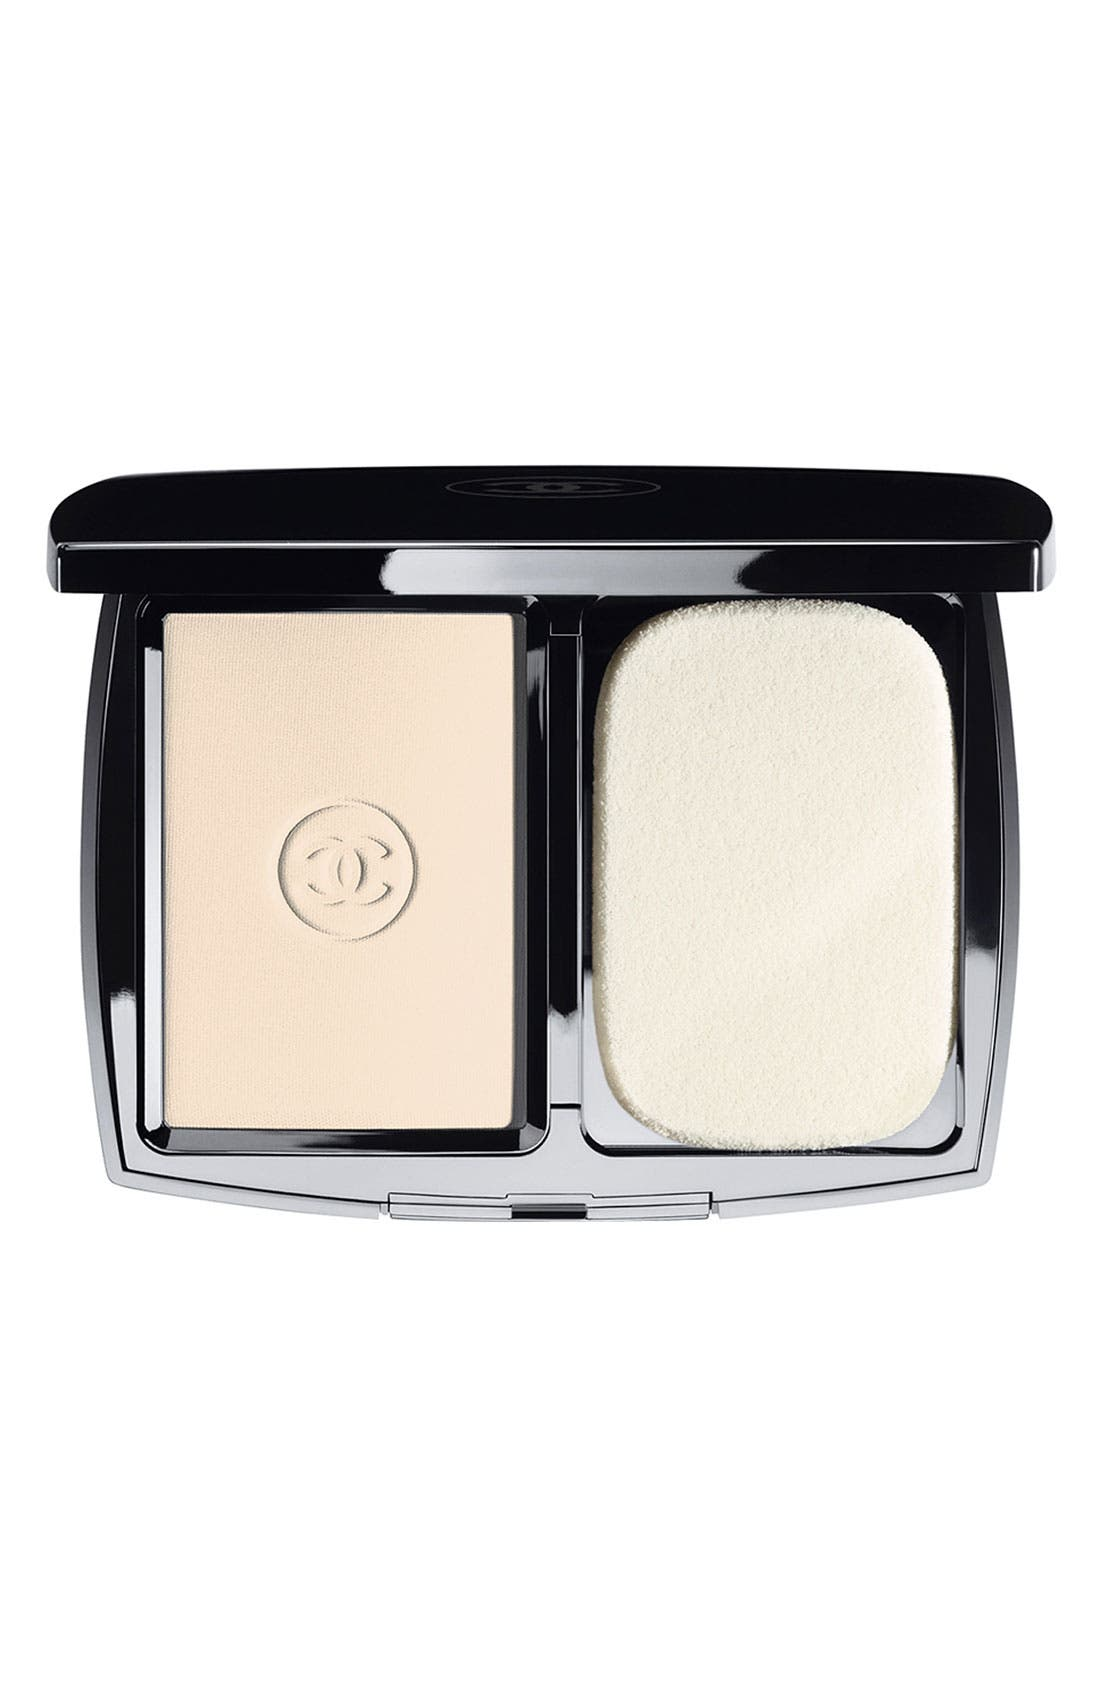 CHANEL DOUBLE PERFECTION LUMIÈRE<br />Long-Wear Flawless Sunscreen Powder Makeup Broad Spectrum SPF 15, Main, color, 250